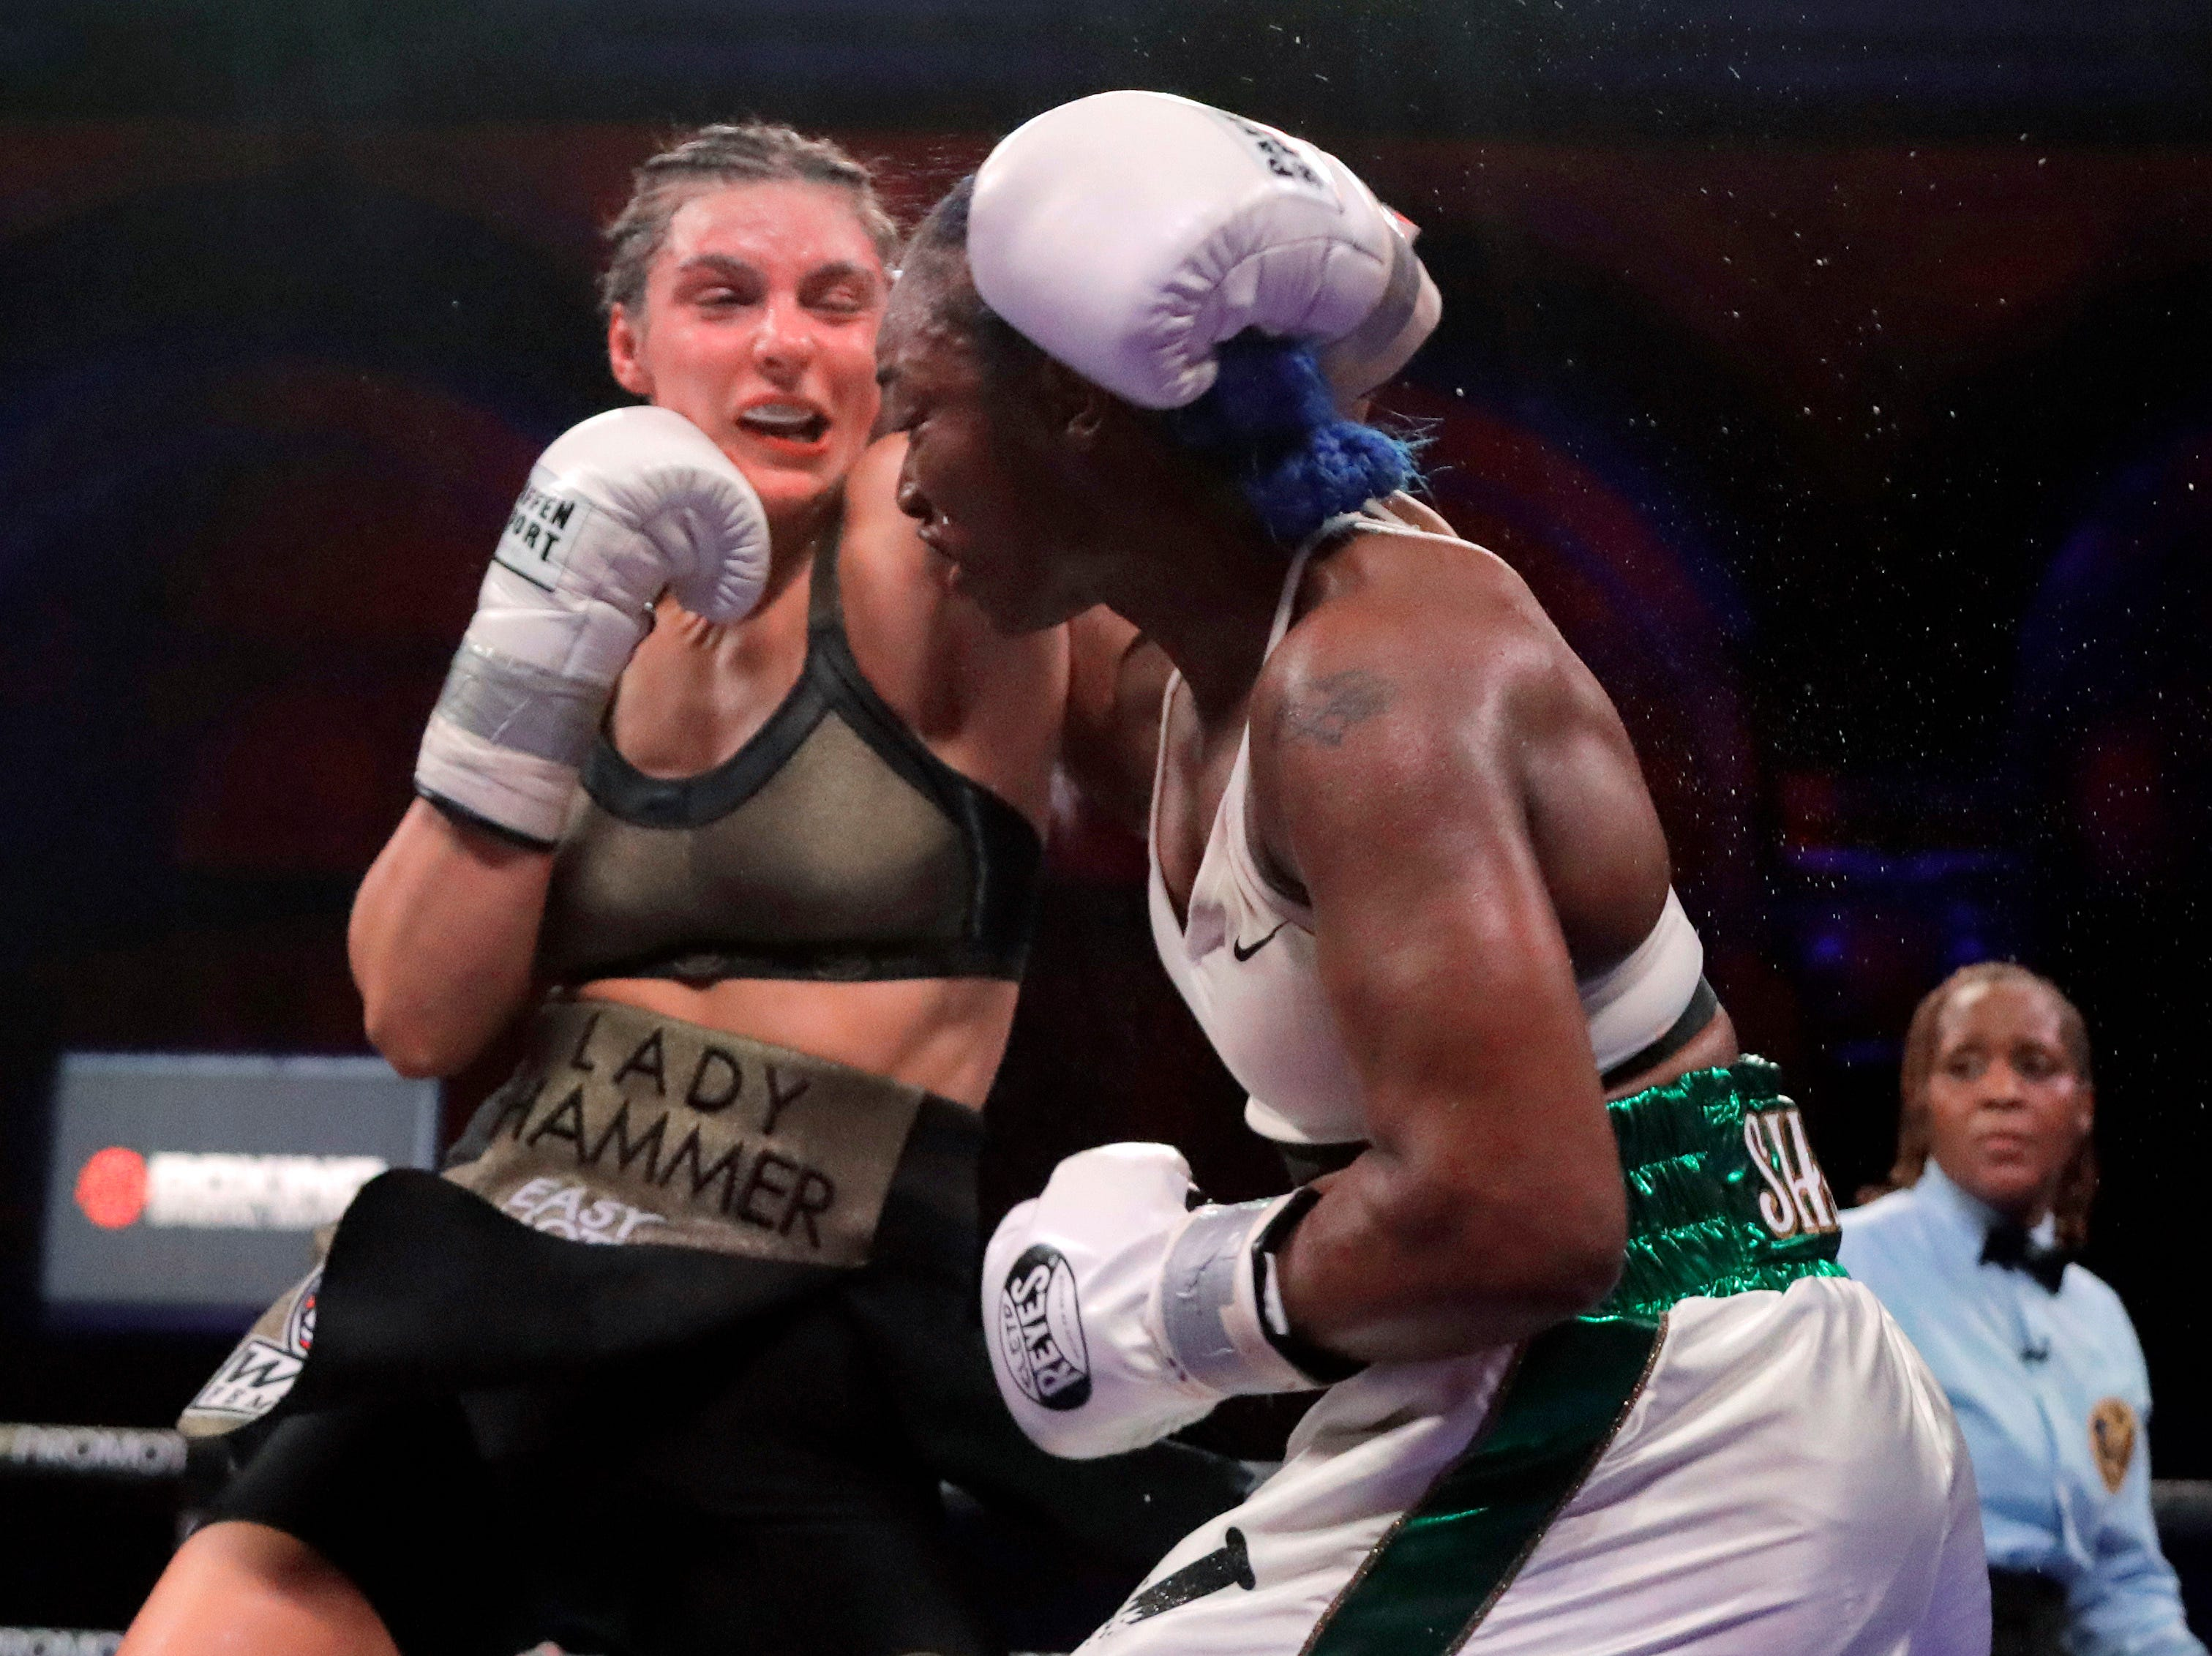 Christina Hammer, left, and Claressa Shields fight during the 10th round of a women's middleweight championship boxing bout, Saturday, April 13, 2019, in Atlantic City, N.J. Shields won by unanimous decision.